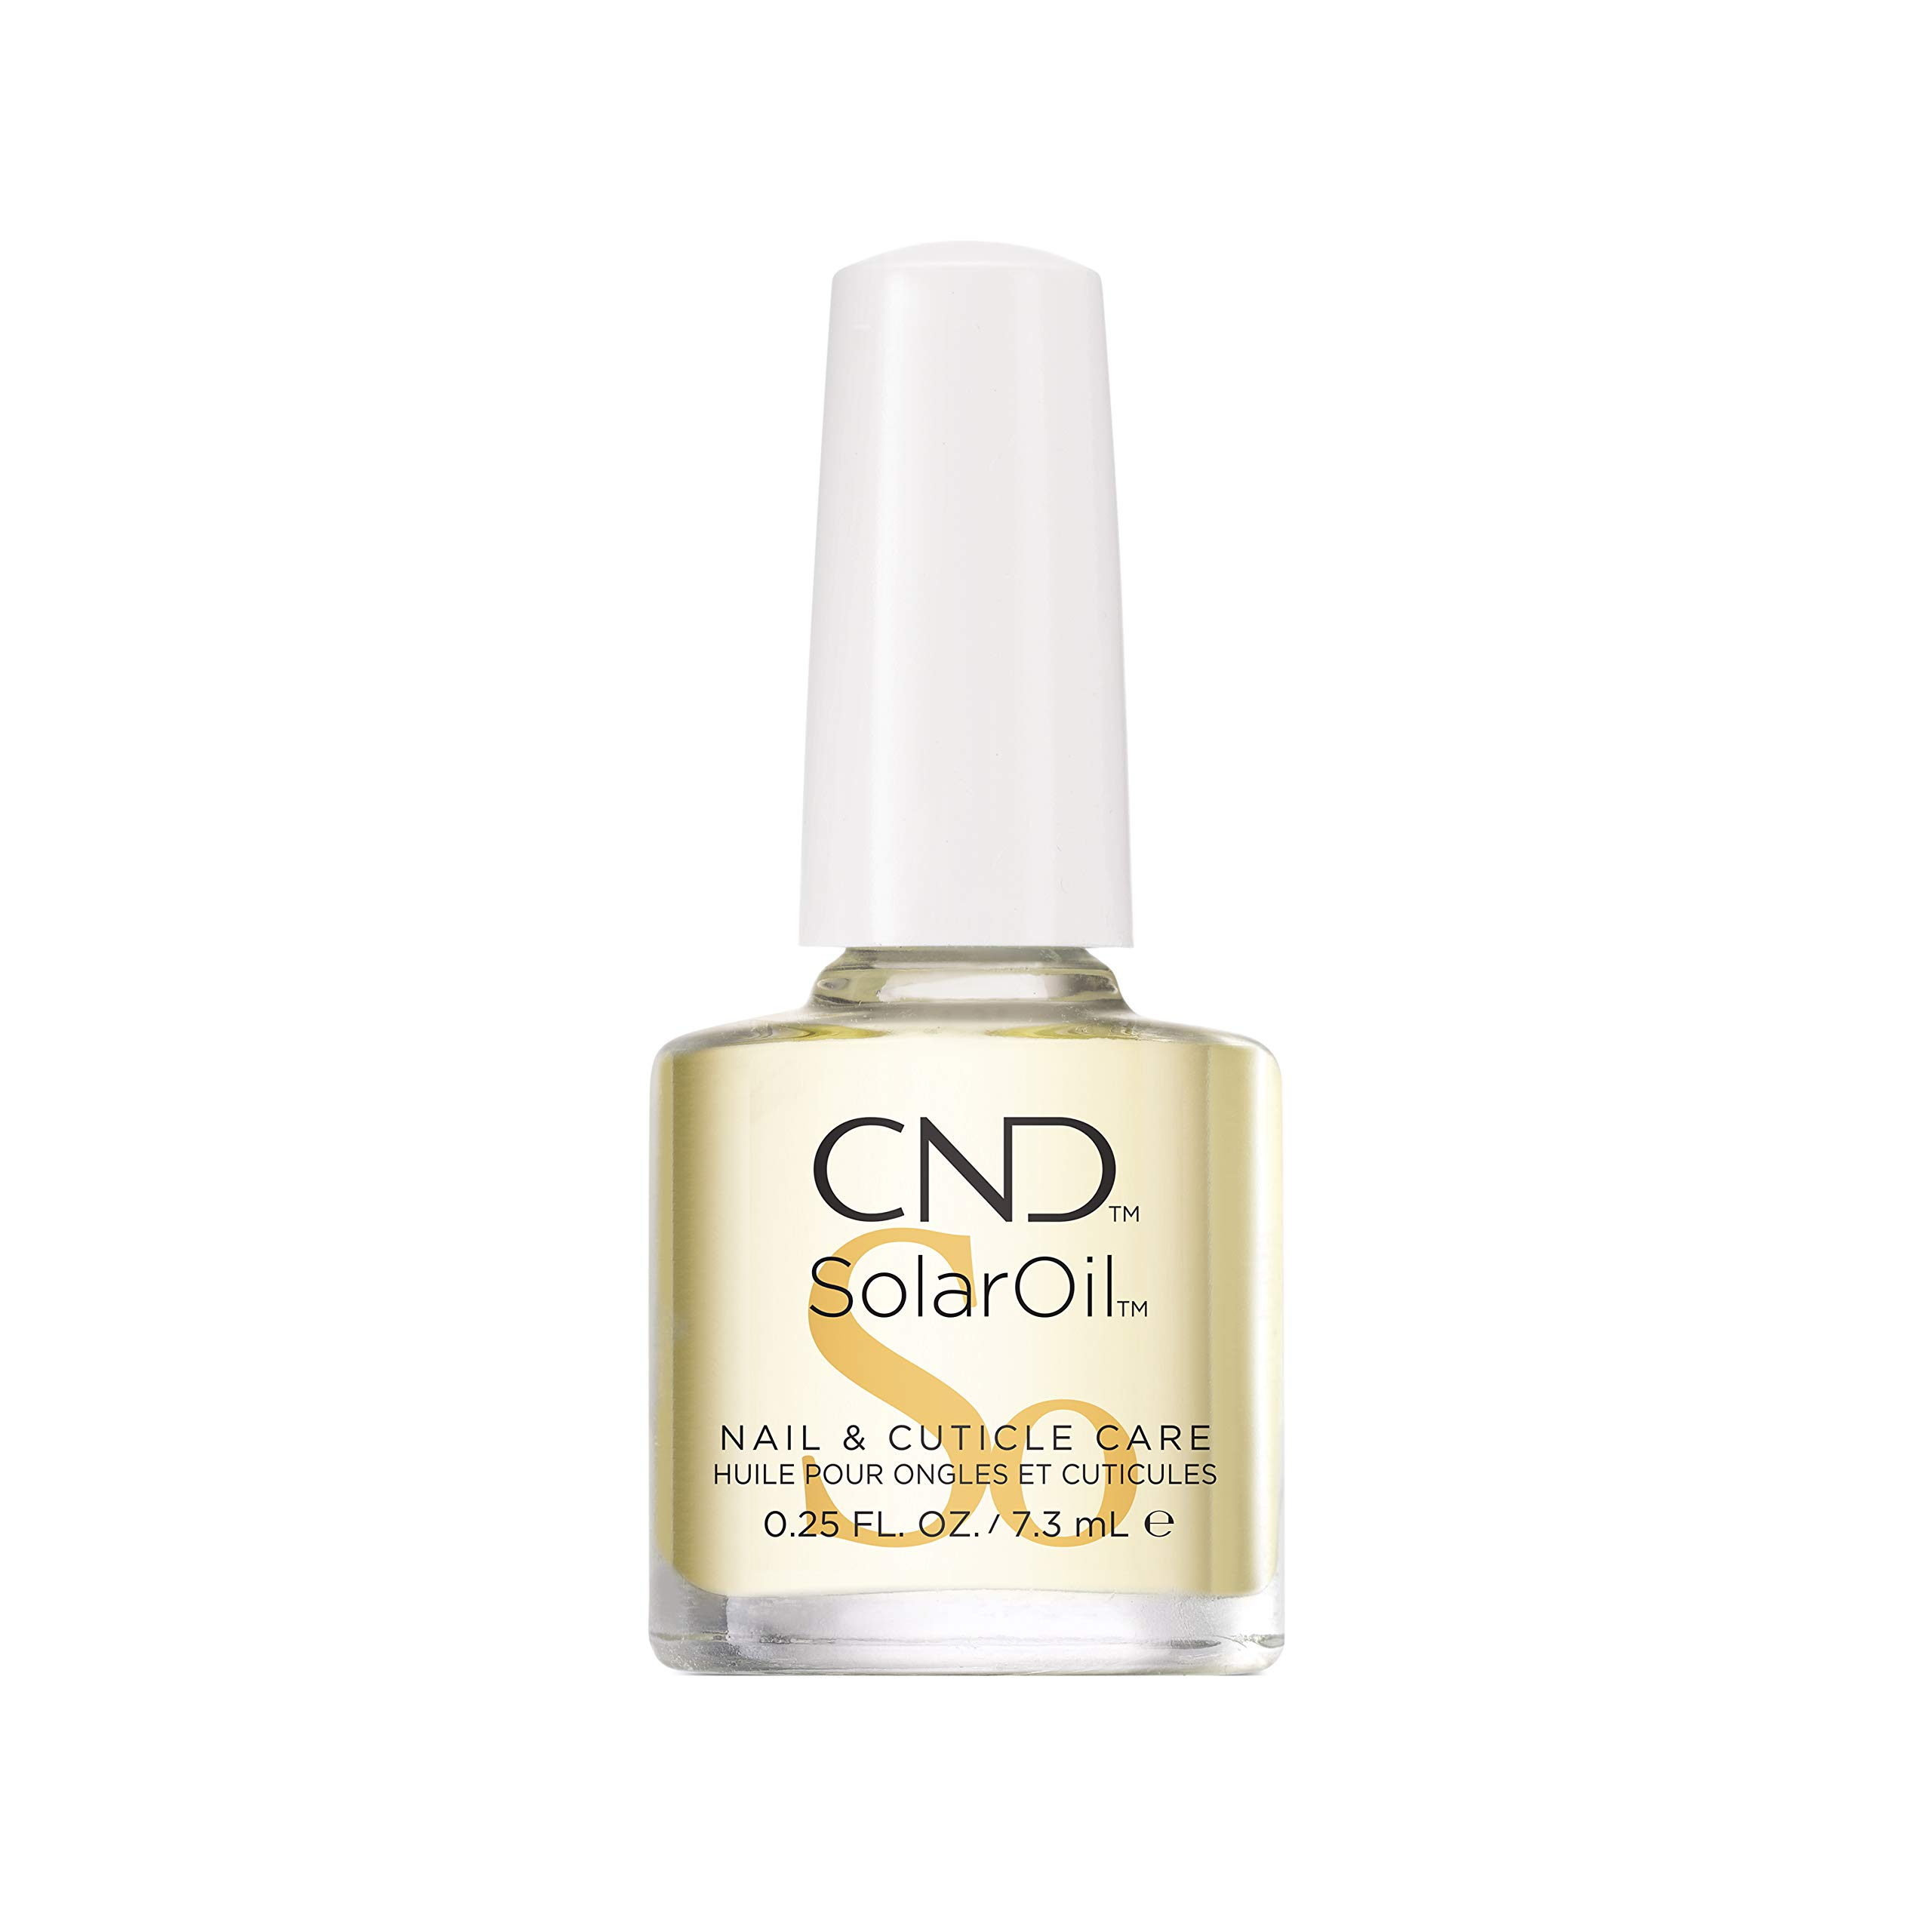 CND SolarOil Nail & Cuticle Care, for Dry, Damaged Cuticles, Infused with Jojoba Oil & Vitamin E for Healthier, Stronger Nails